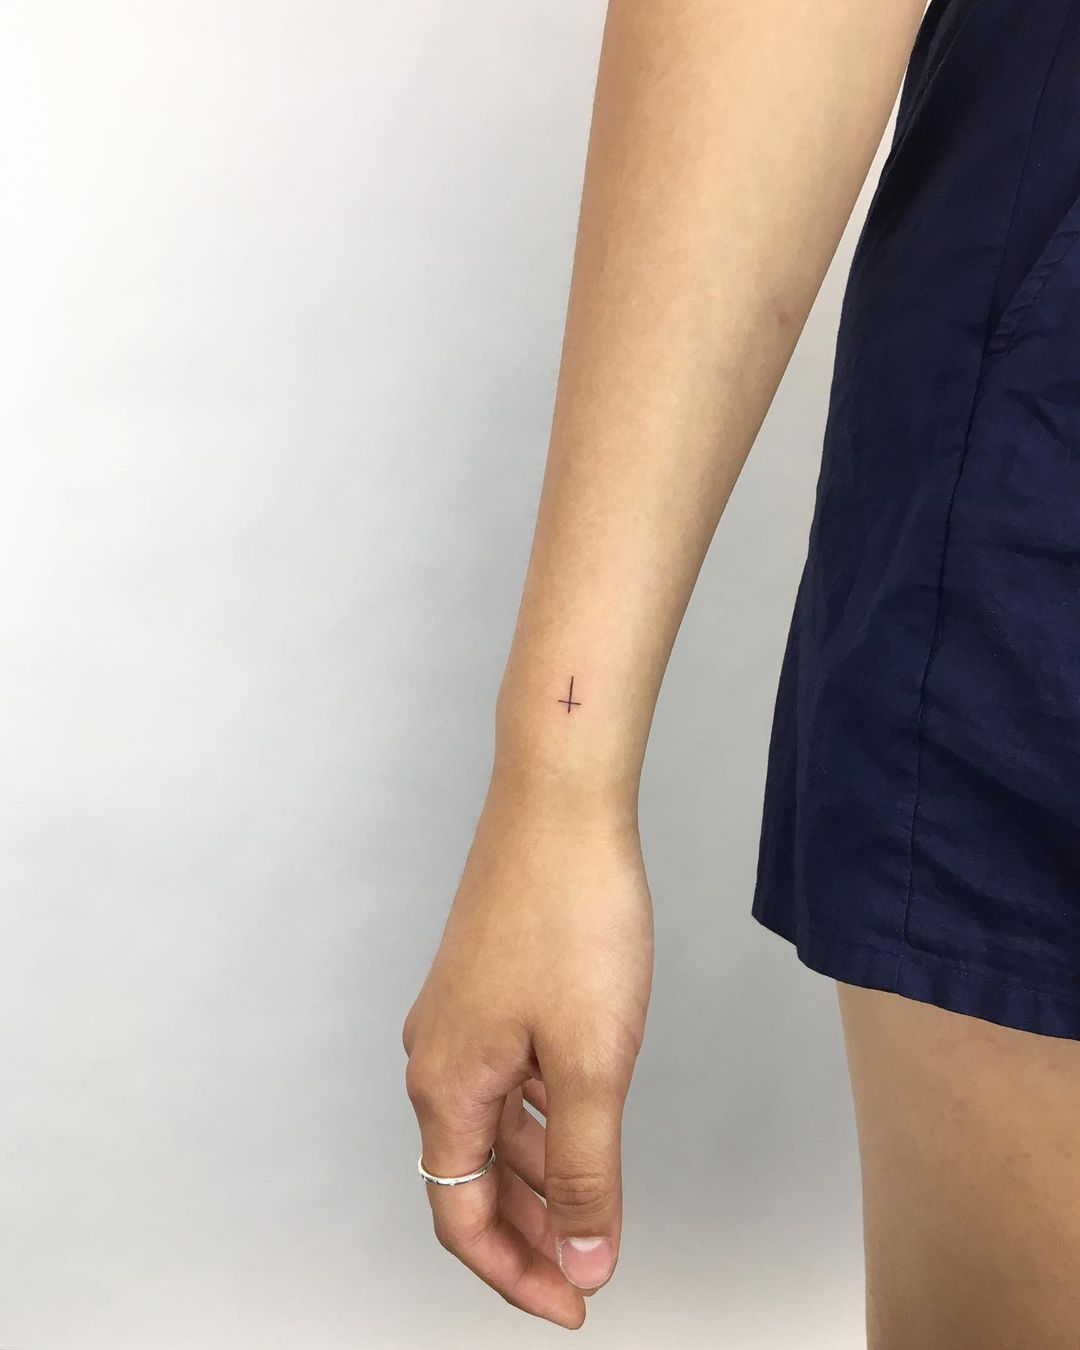 tiny side wrist tattoo designs to try